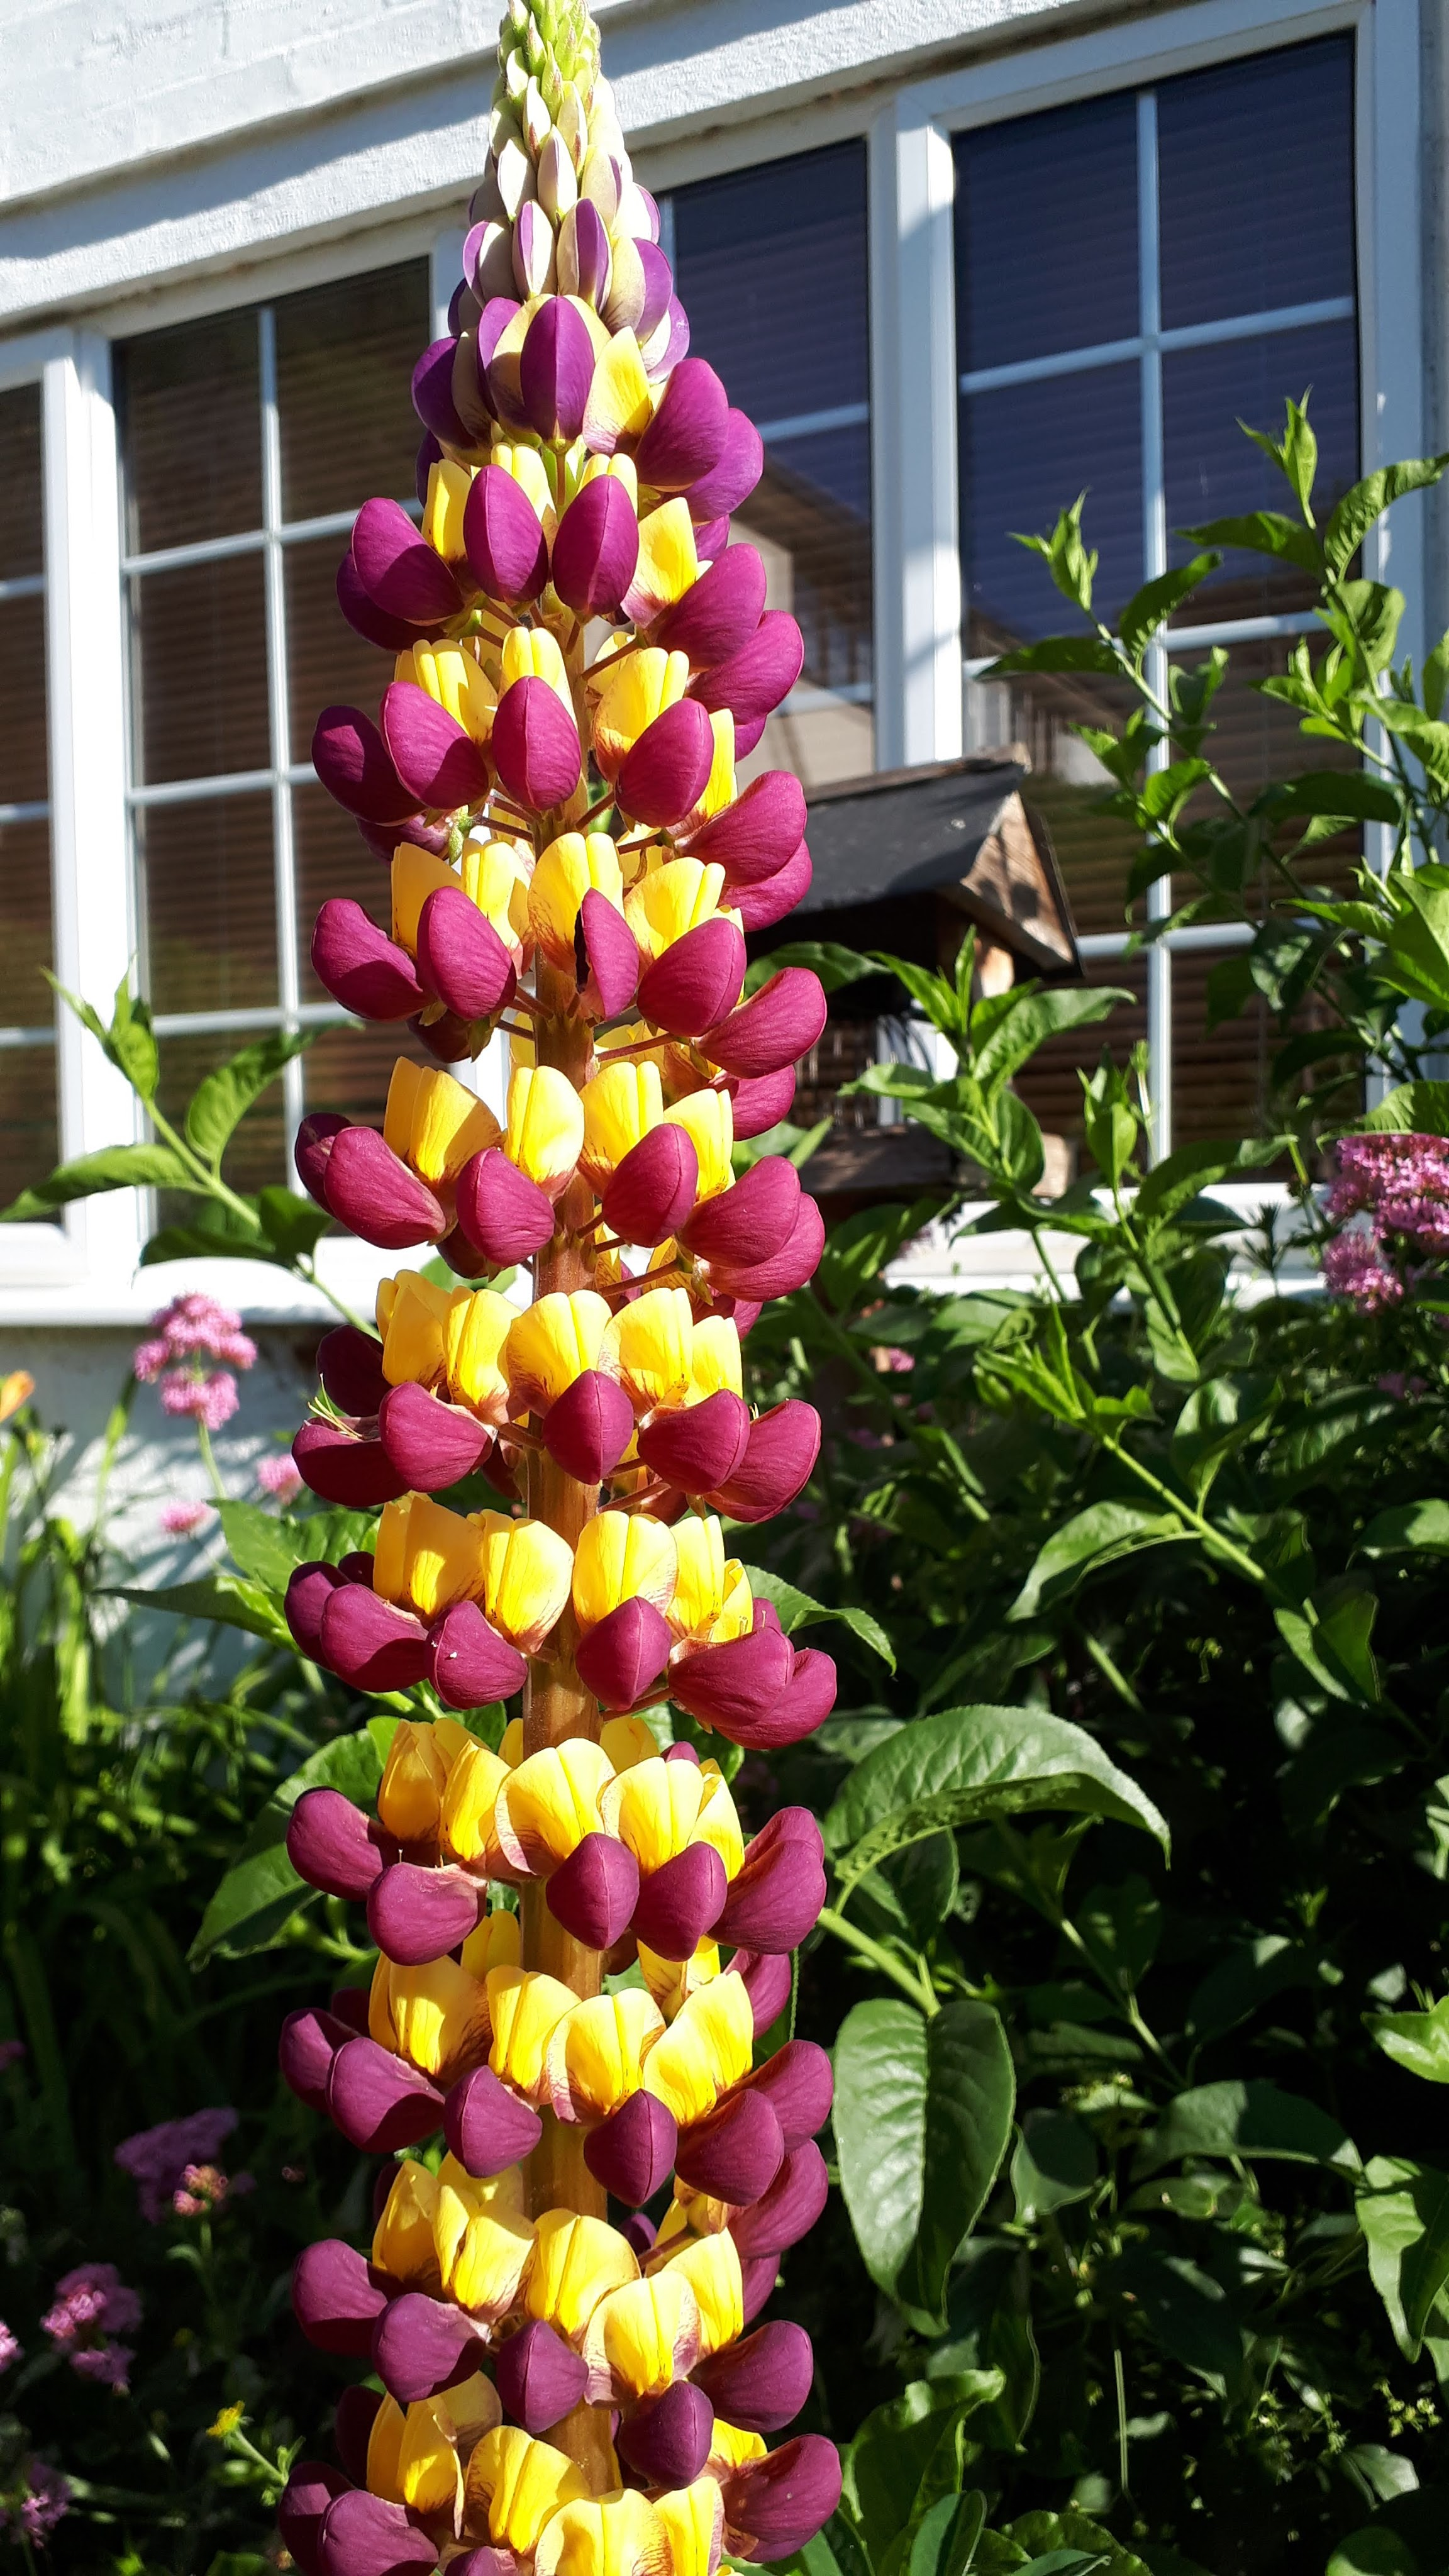 Lupins and more for Six on Saturday